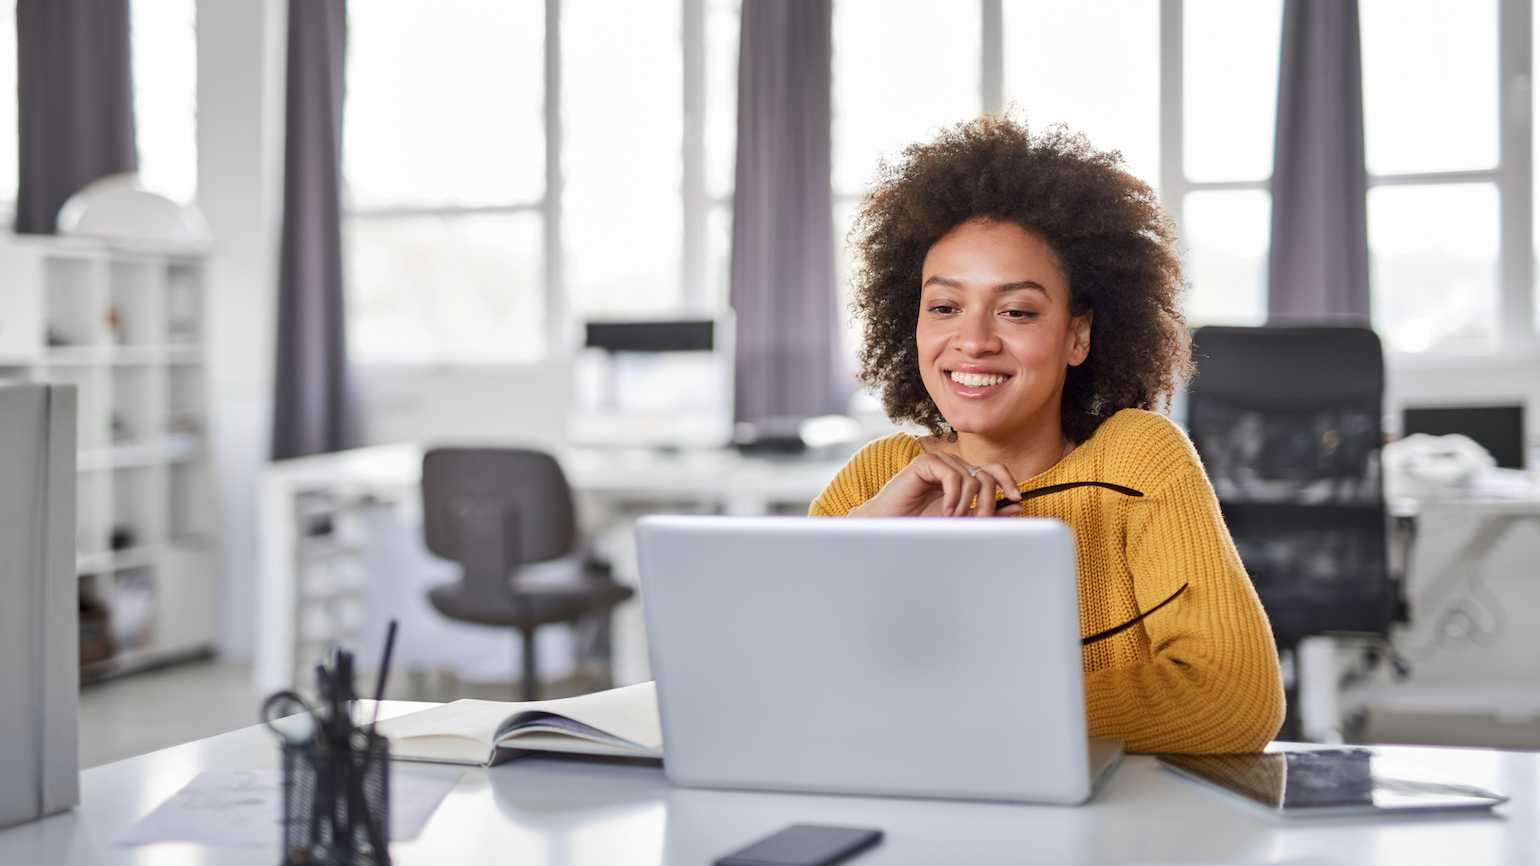 5 Ways to Work Happily towards Your Goal